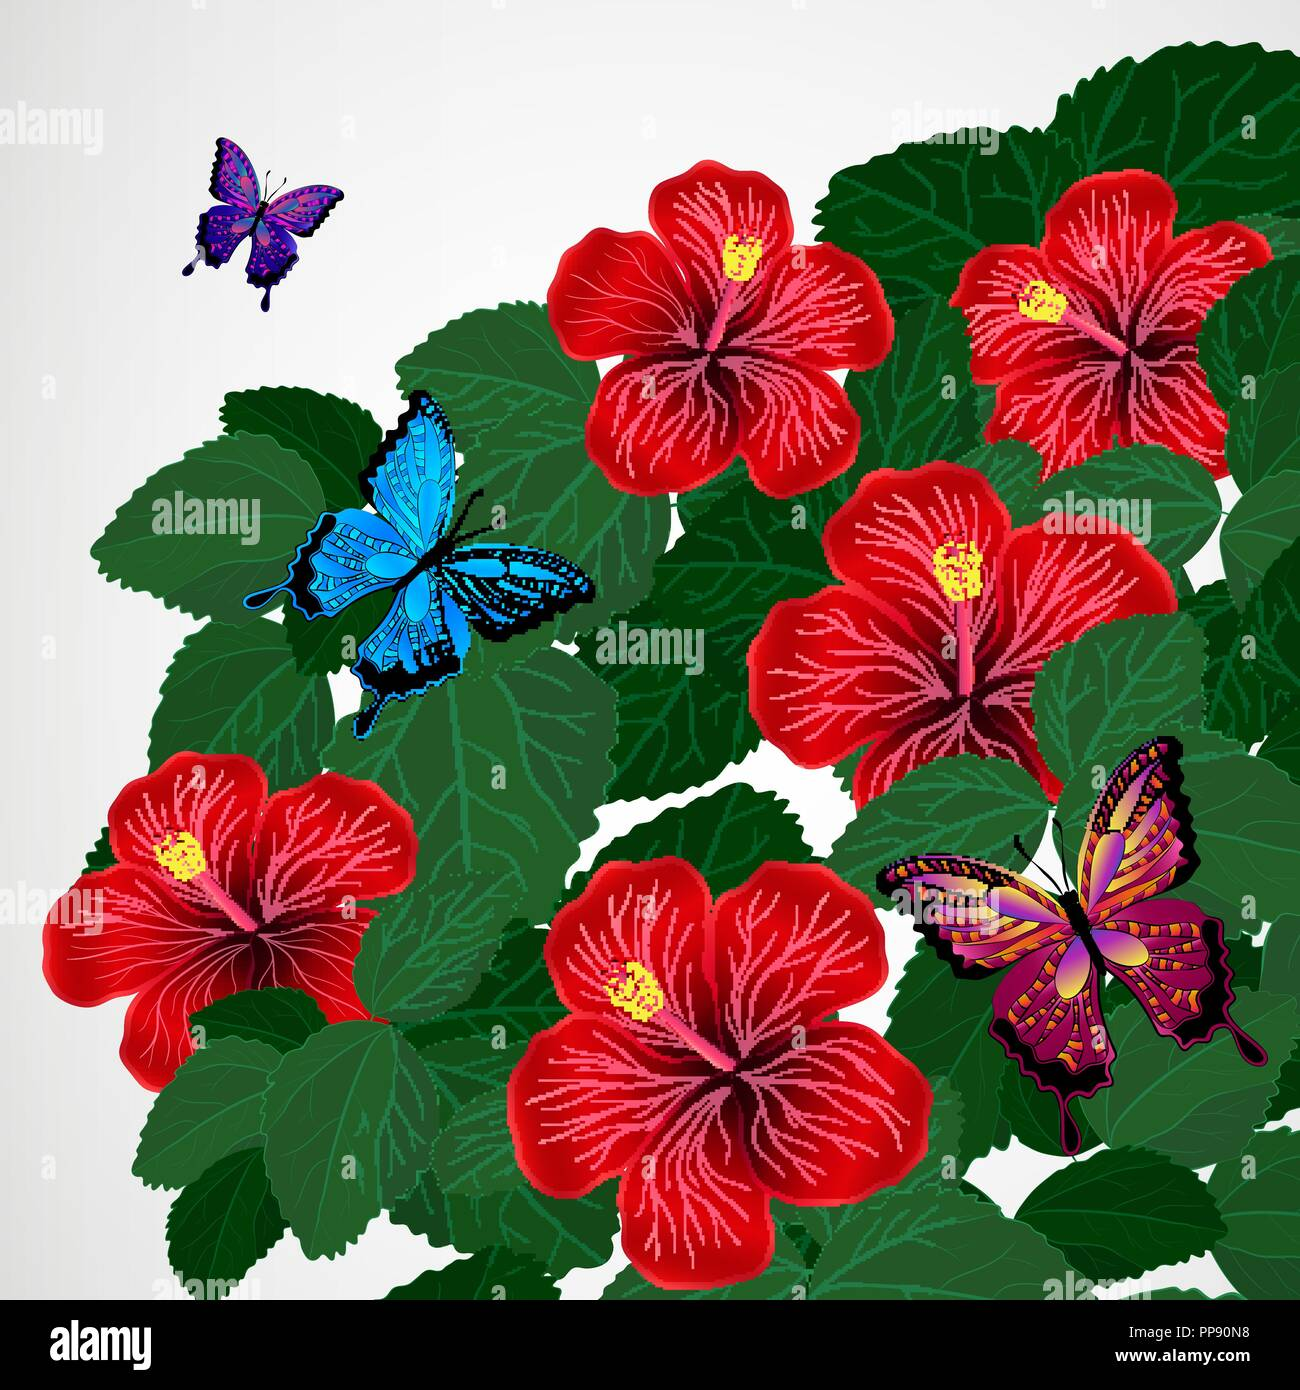 Floral Design Background Hibiscus Flowers With Butterflies Stock